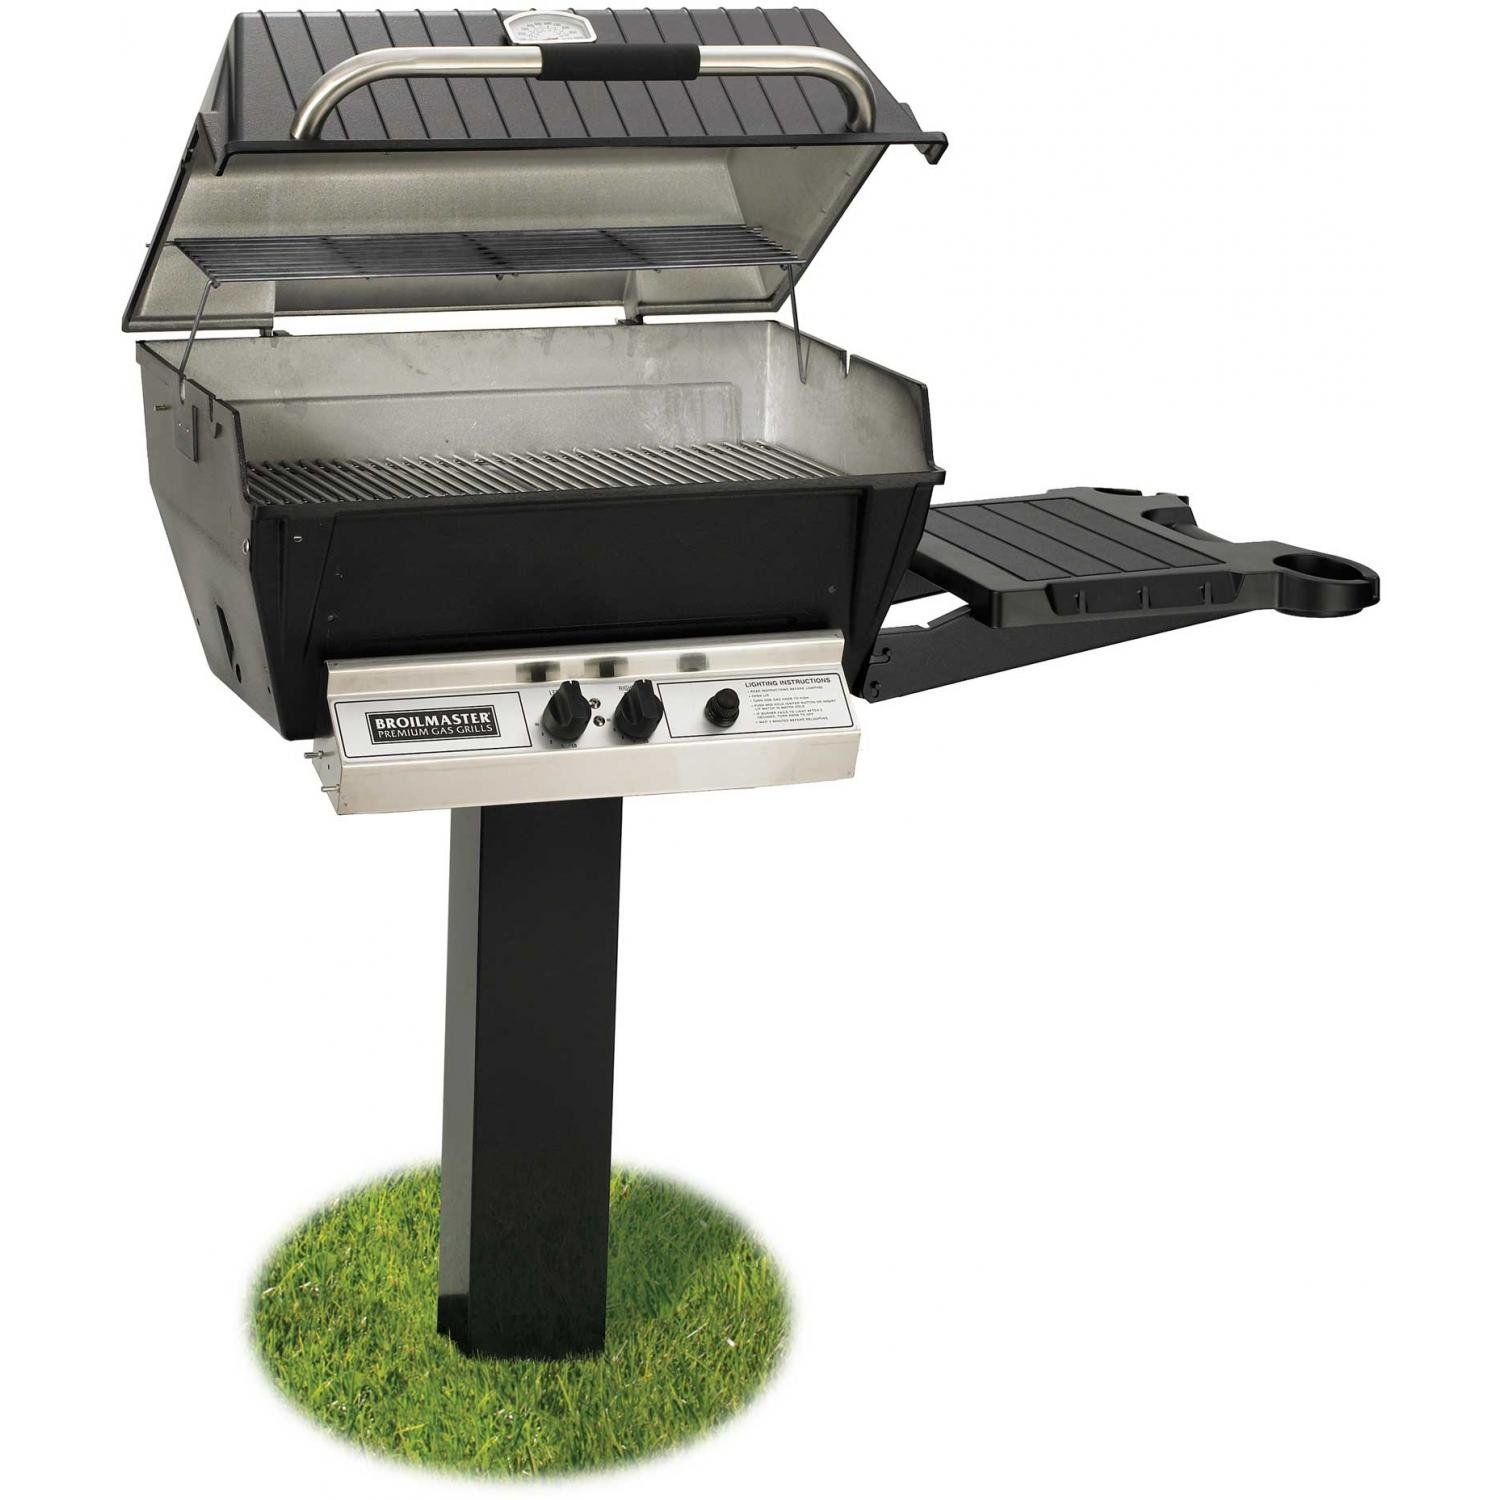 llhowrll removable tec site for pedestal prices on sport sales natural g gas grill fr